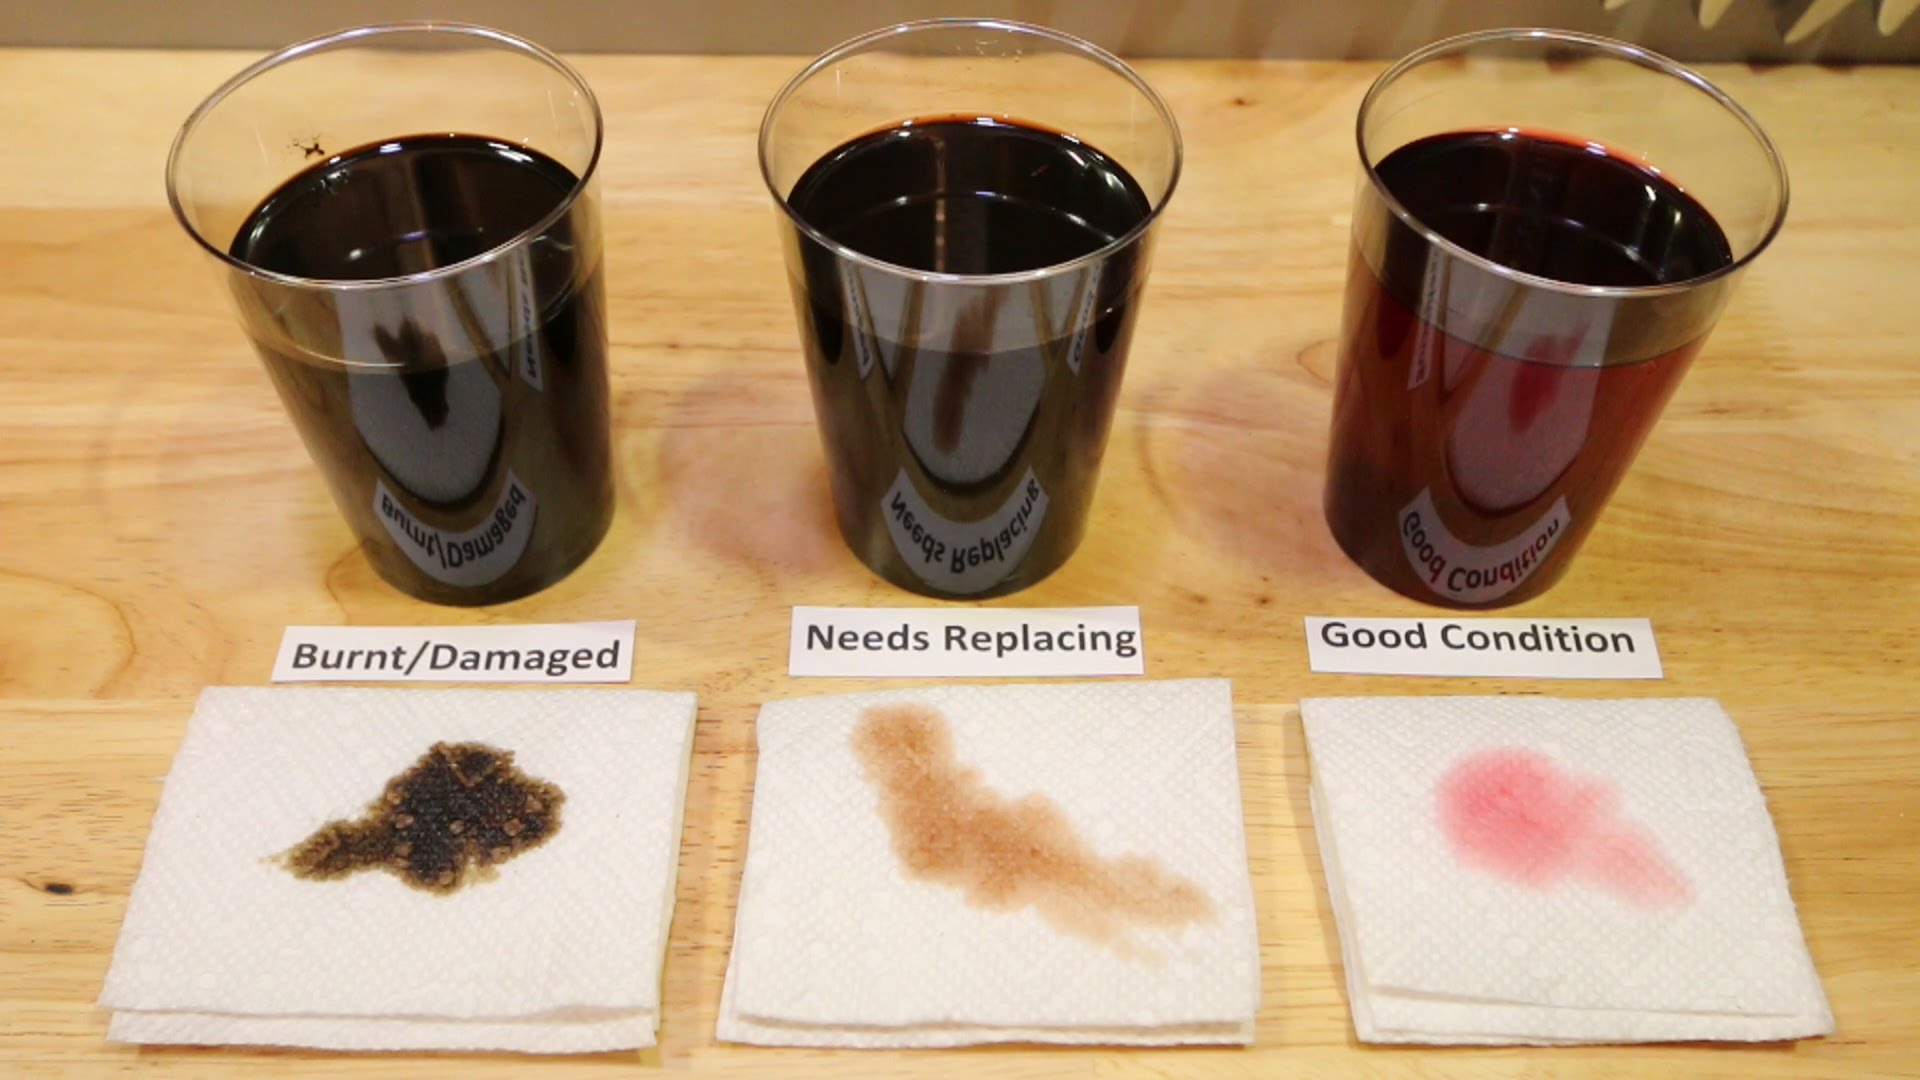 can changing the transmission fluid cause damage to your ride